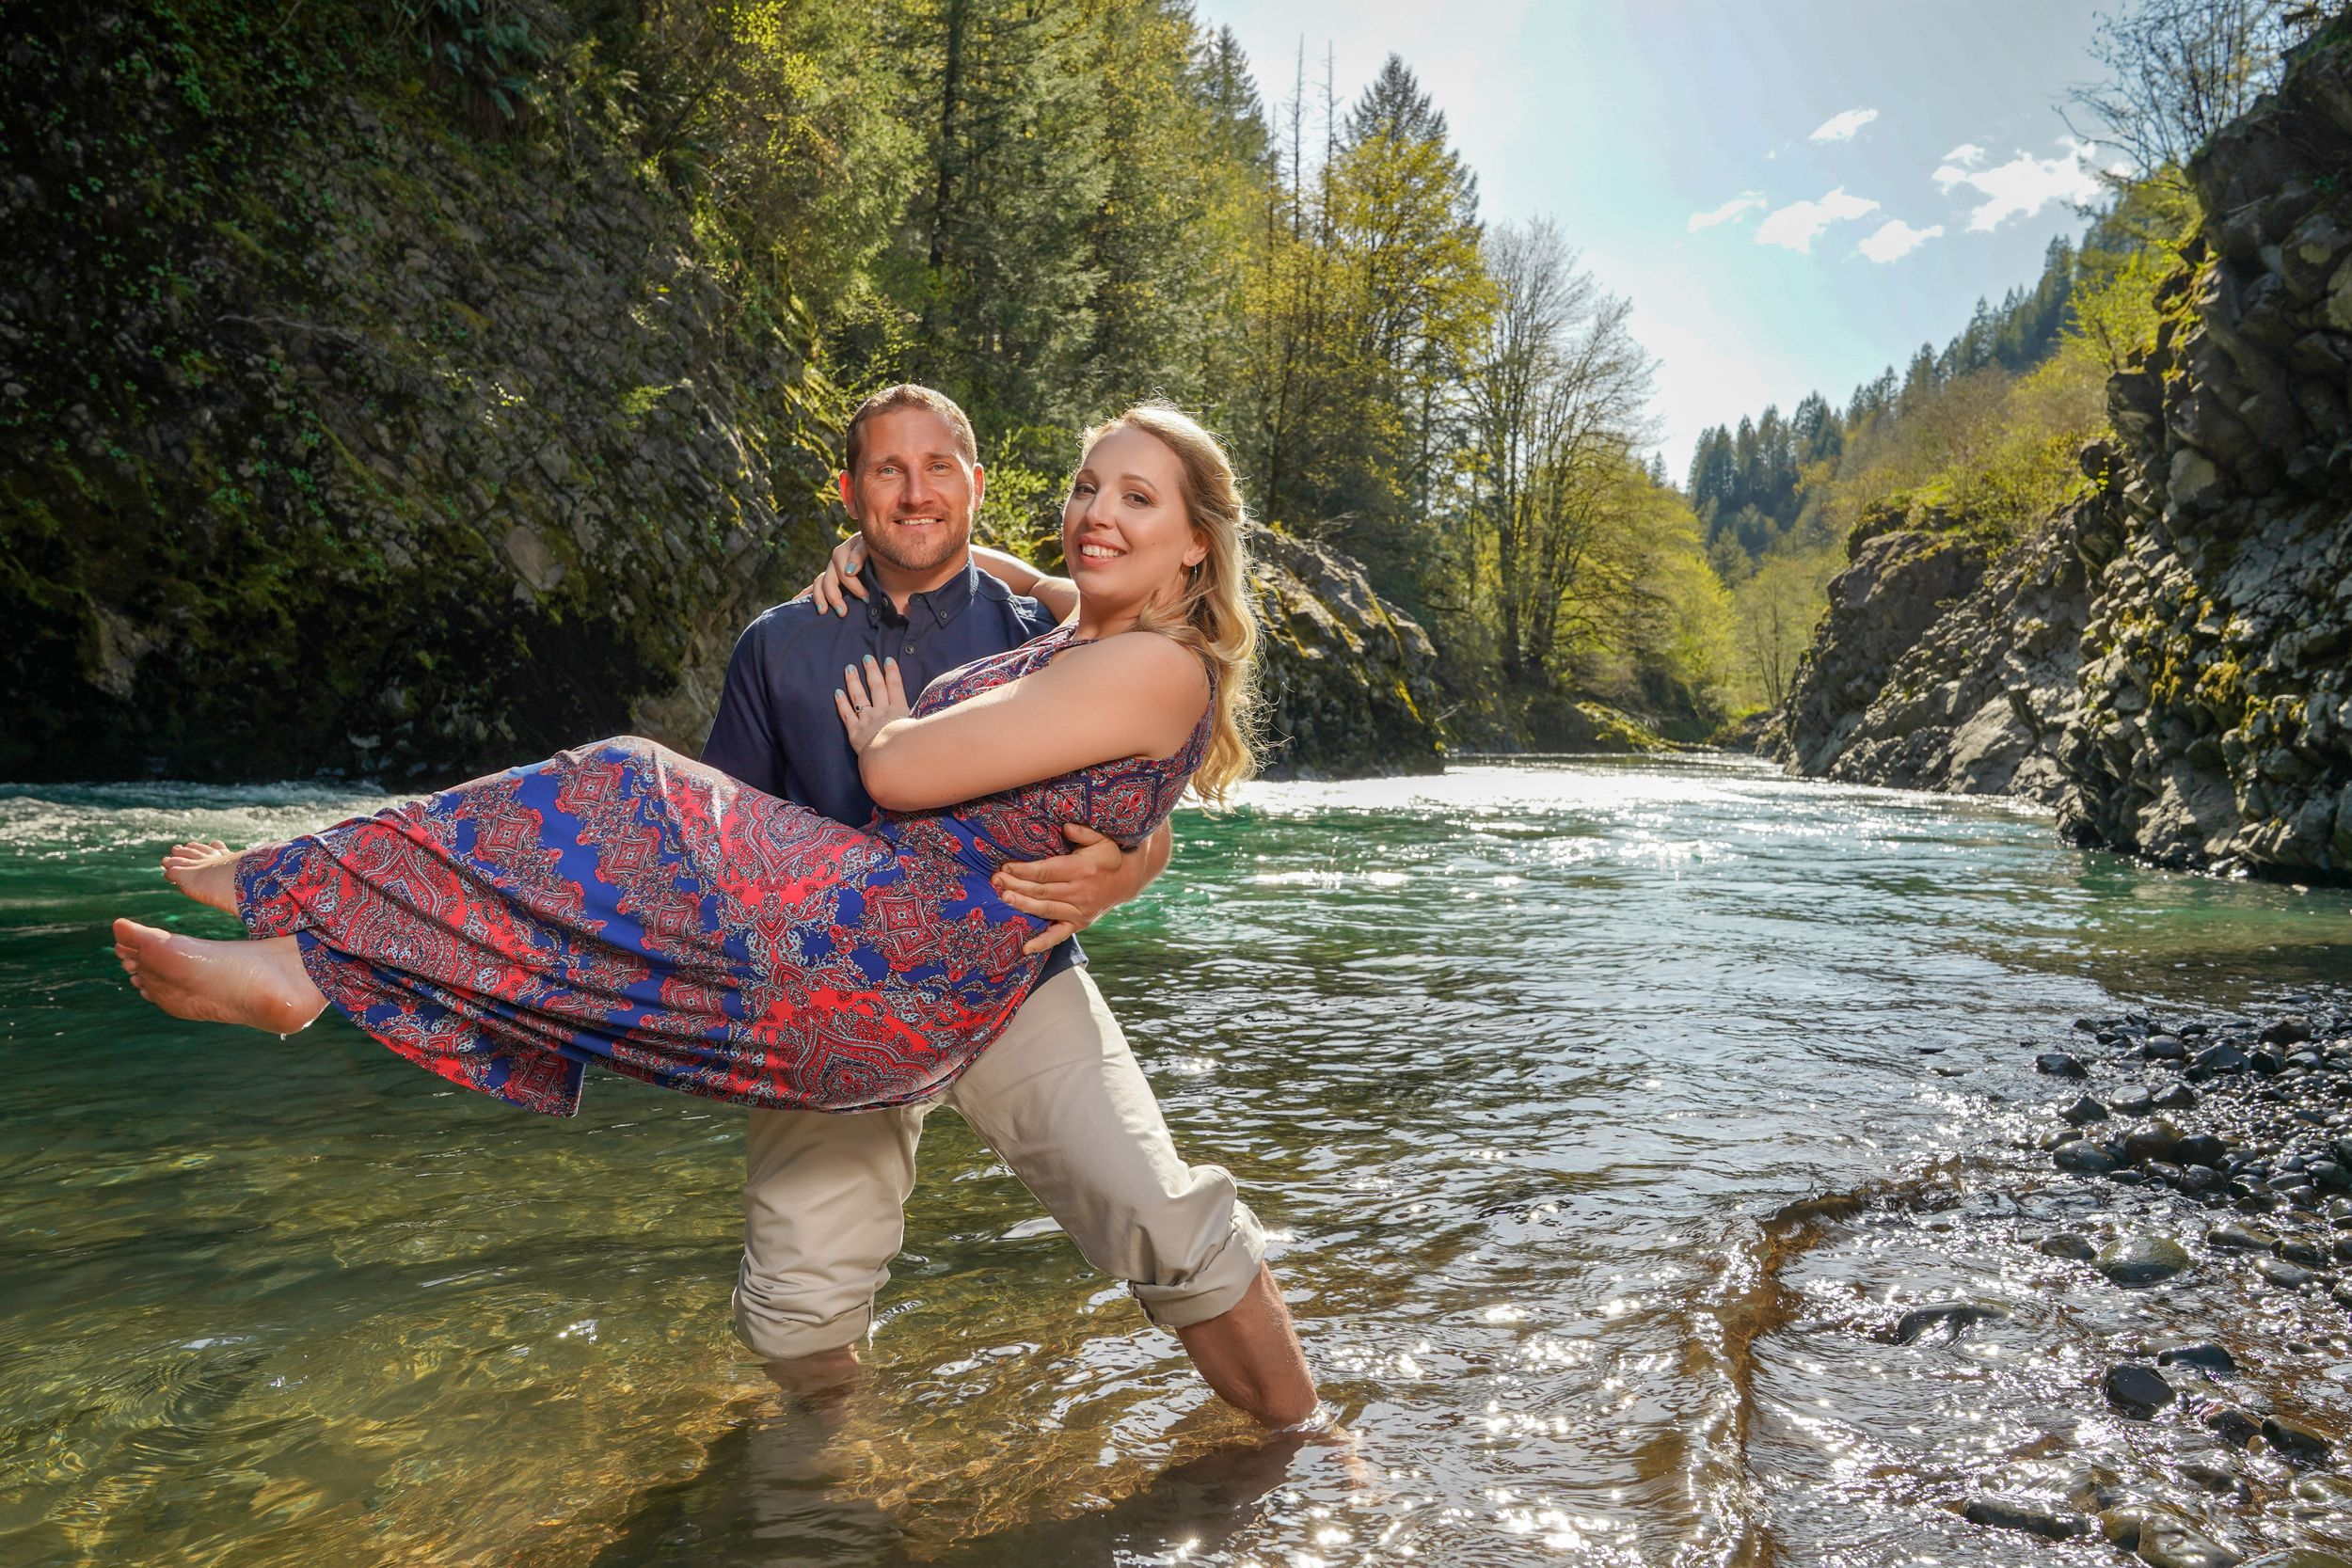 swept off her feet in the river - Engagement photography